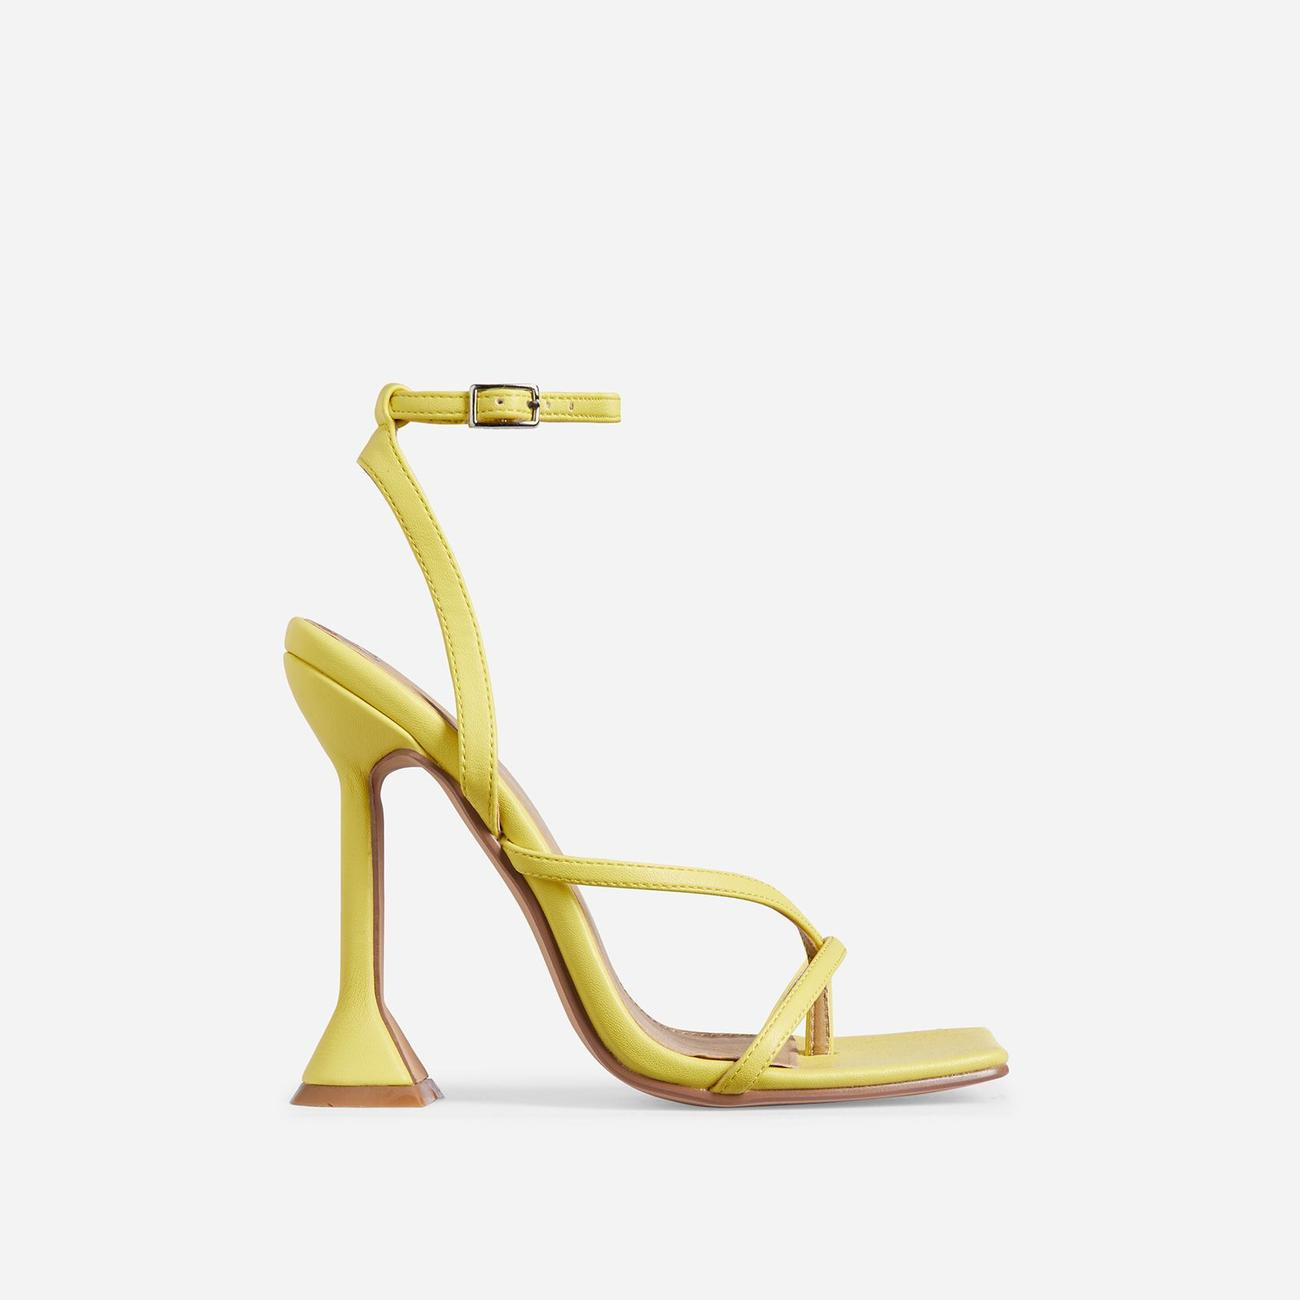 Freestyle Square Toe Pyramid Heel In Yellow Faux Leather Image 1